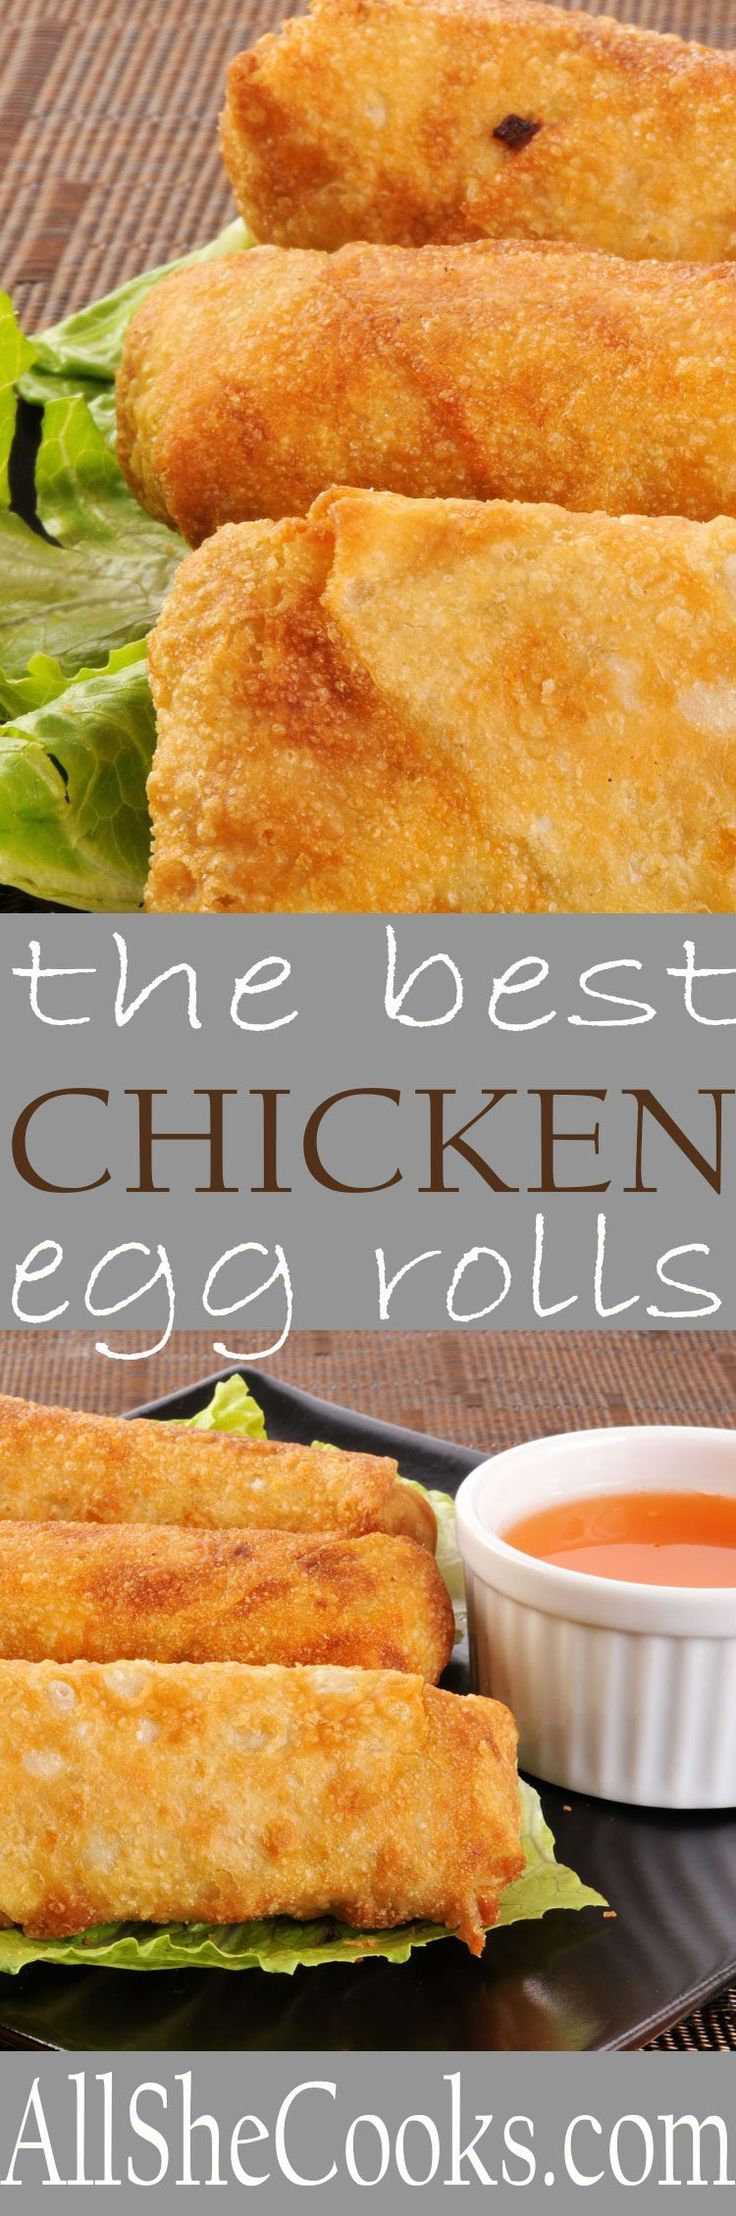 Make Egg Rolls With This Homemade Egg Rolls Recipe Fro A Healthy And Tasty Appetizer Or